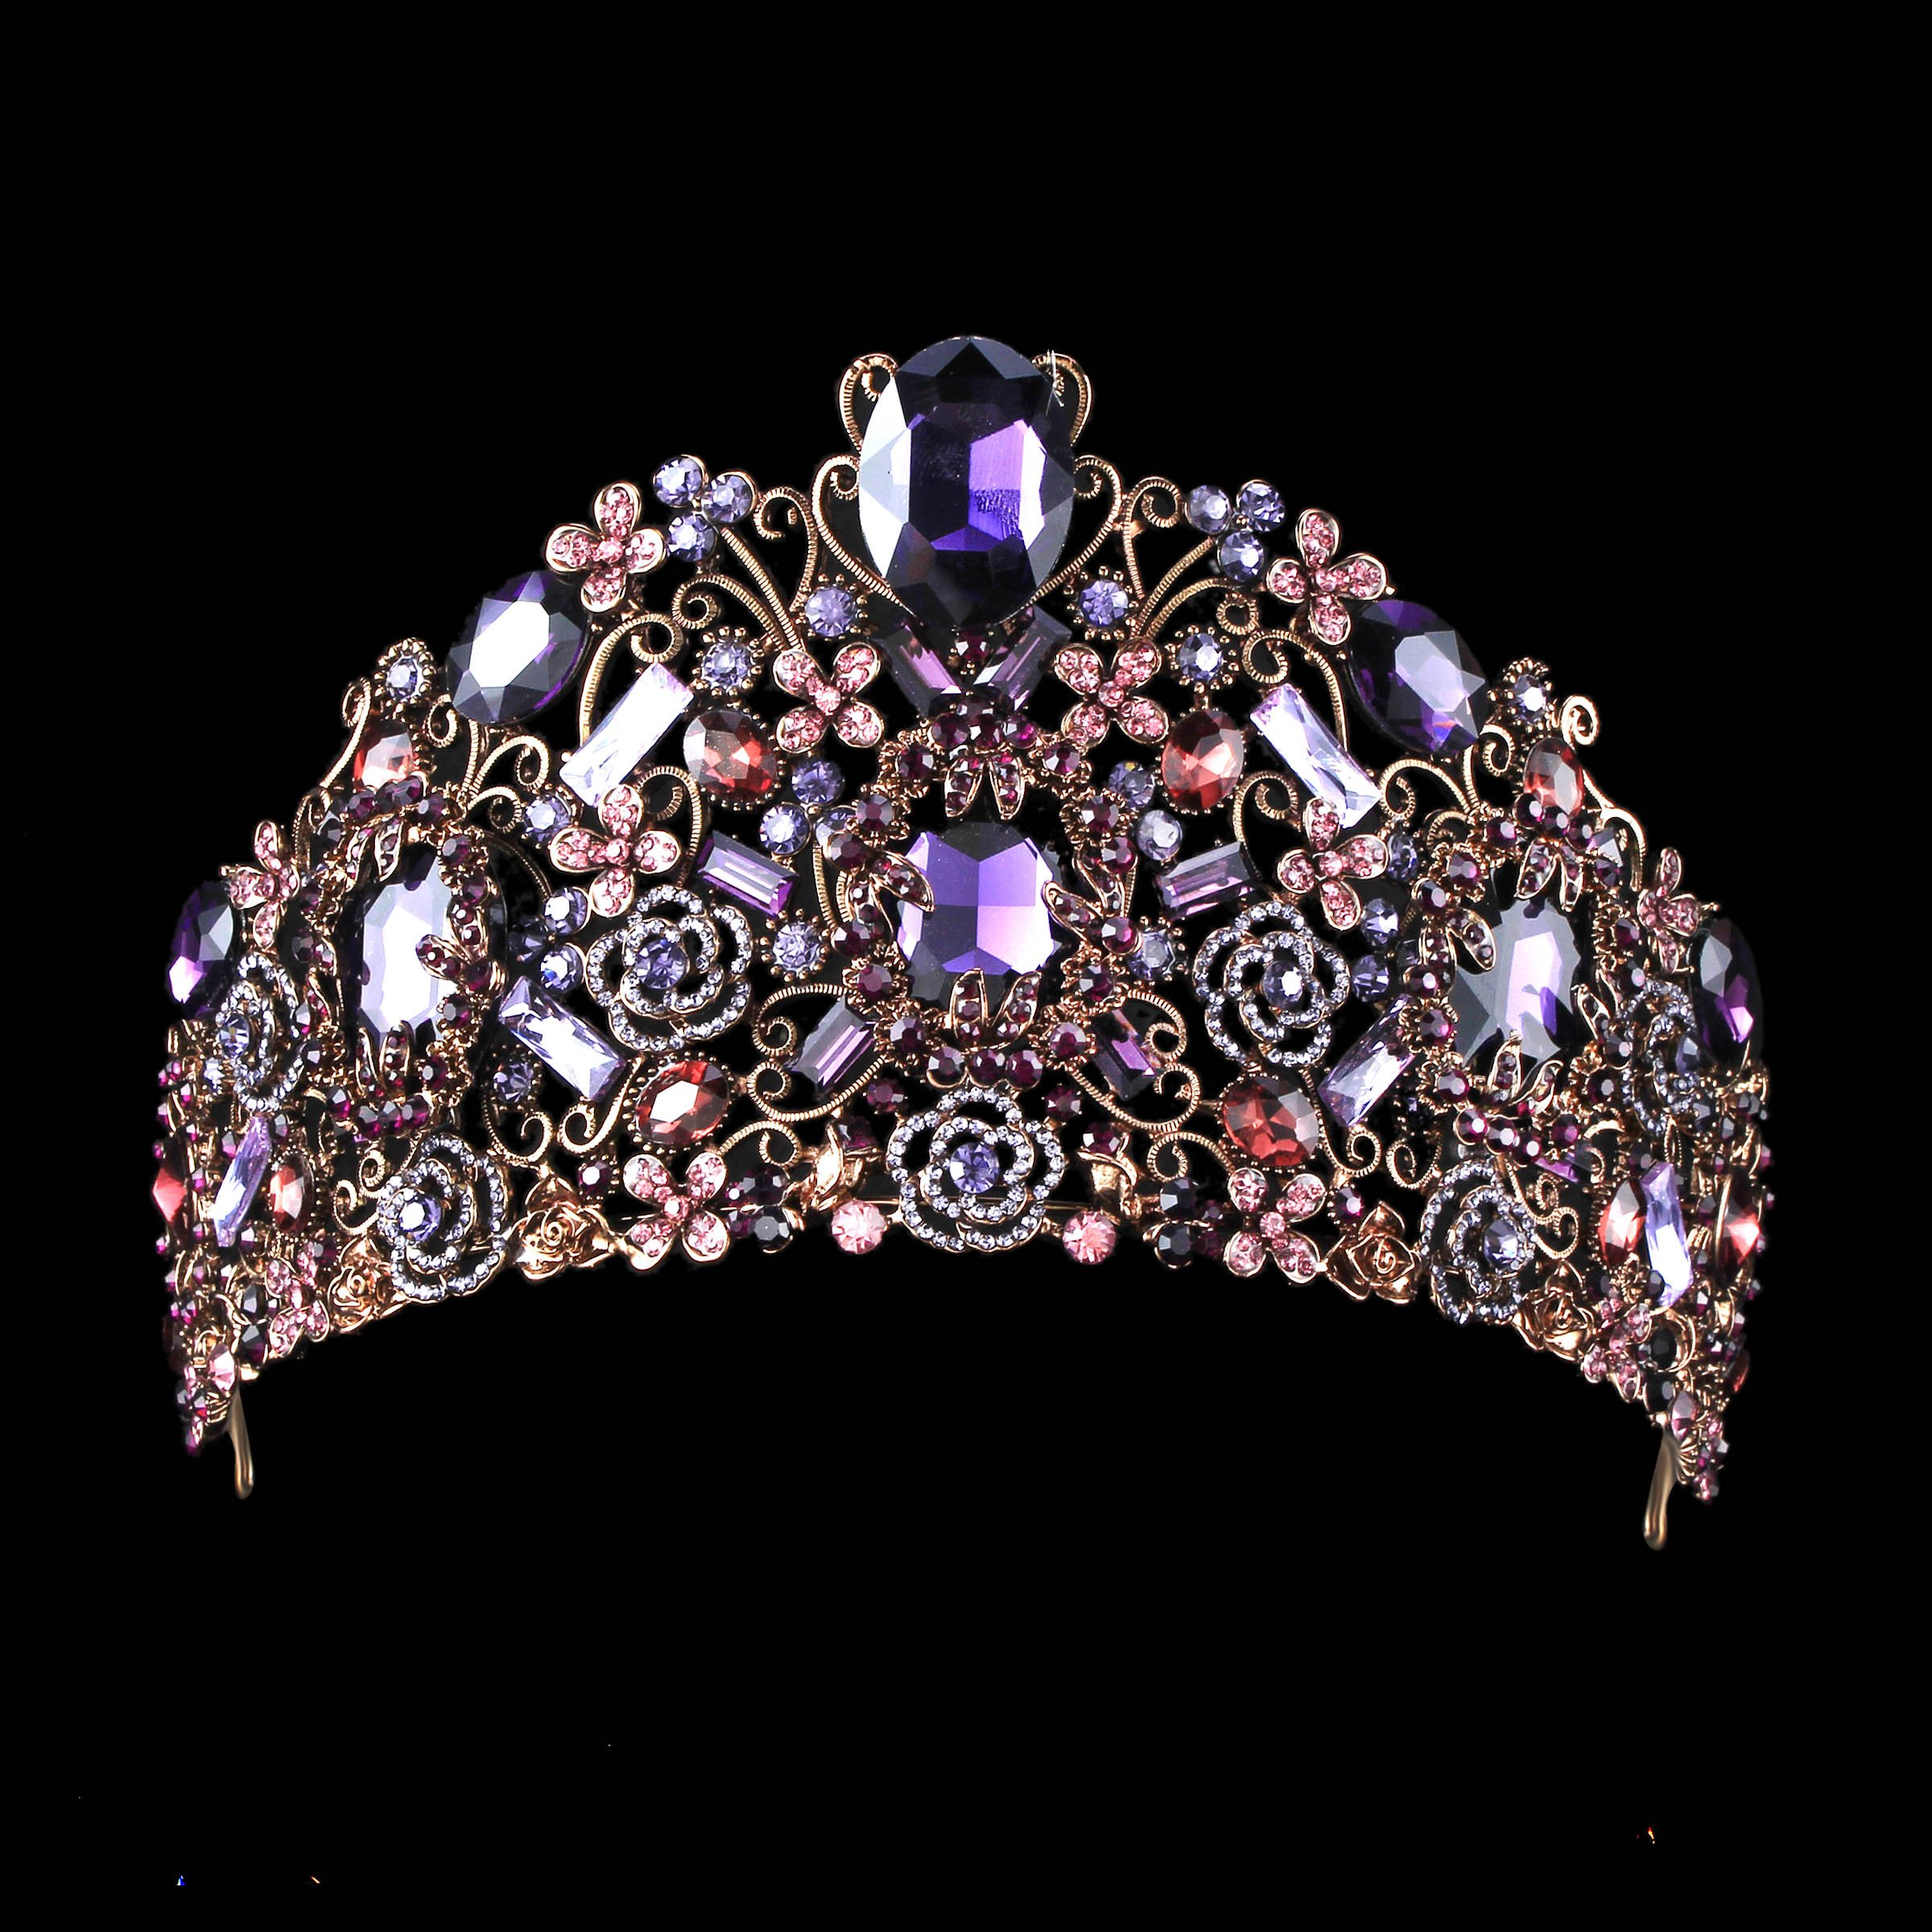 Amazon.com   FUMUD Handmade Luxury Black Baroque Style Bridal Purple Crystal  Crown Tiara Headpieces Birthday party Hair Accessories (Purple)   Beauty b19eee0a648a